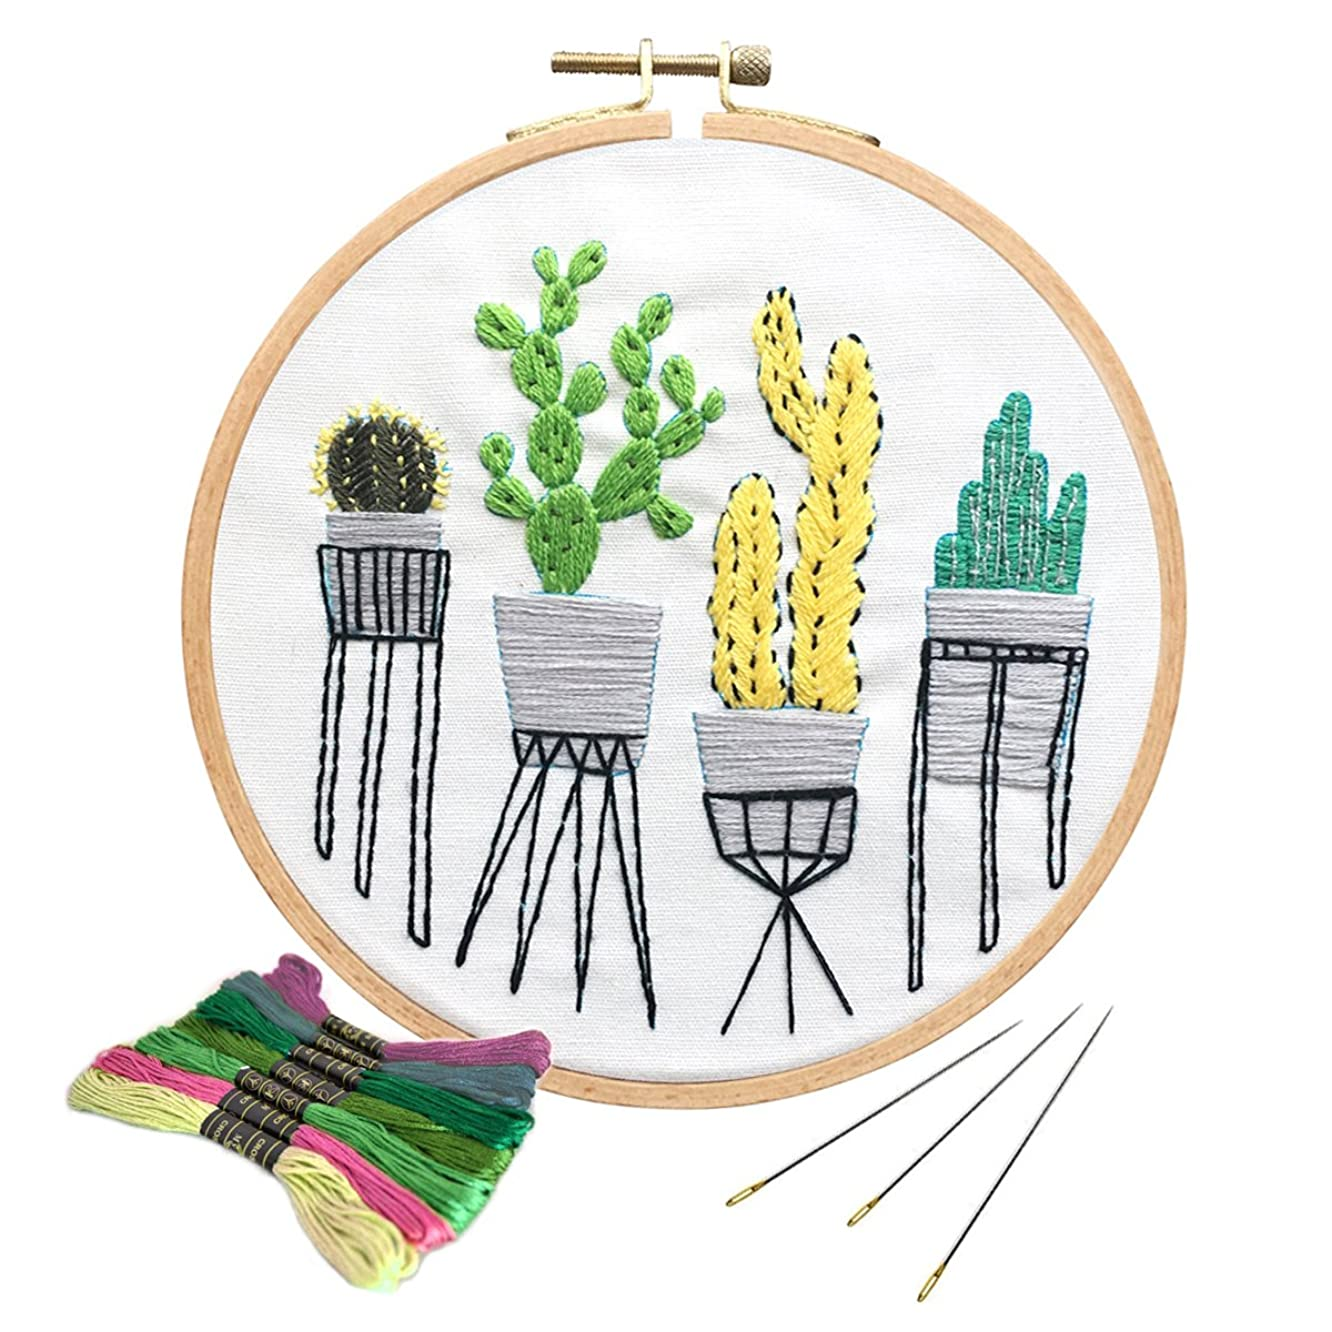 Unime Full Range of Embroidery Starter Kit with Pattern, Cross Stitch Kit Including Embroidery Cloth with Color Pattern, Bamboo Embroidery Hoop, Color Threads, and Tools Kit (Cactus)